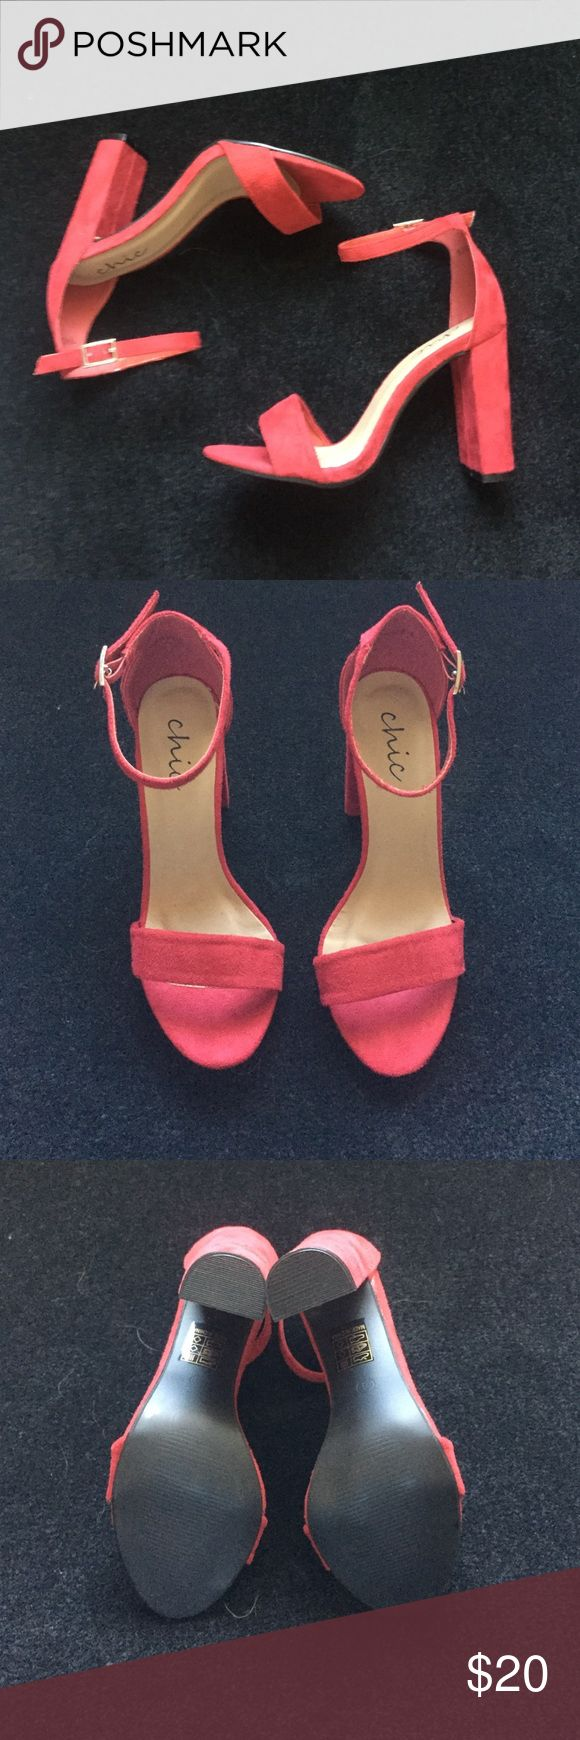 Red heeled sandals Cute never worn red sandals. Comes with tags and box. Super comfortable Shoes Sandals